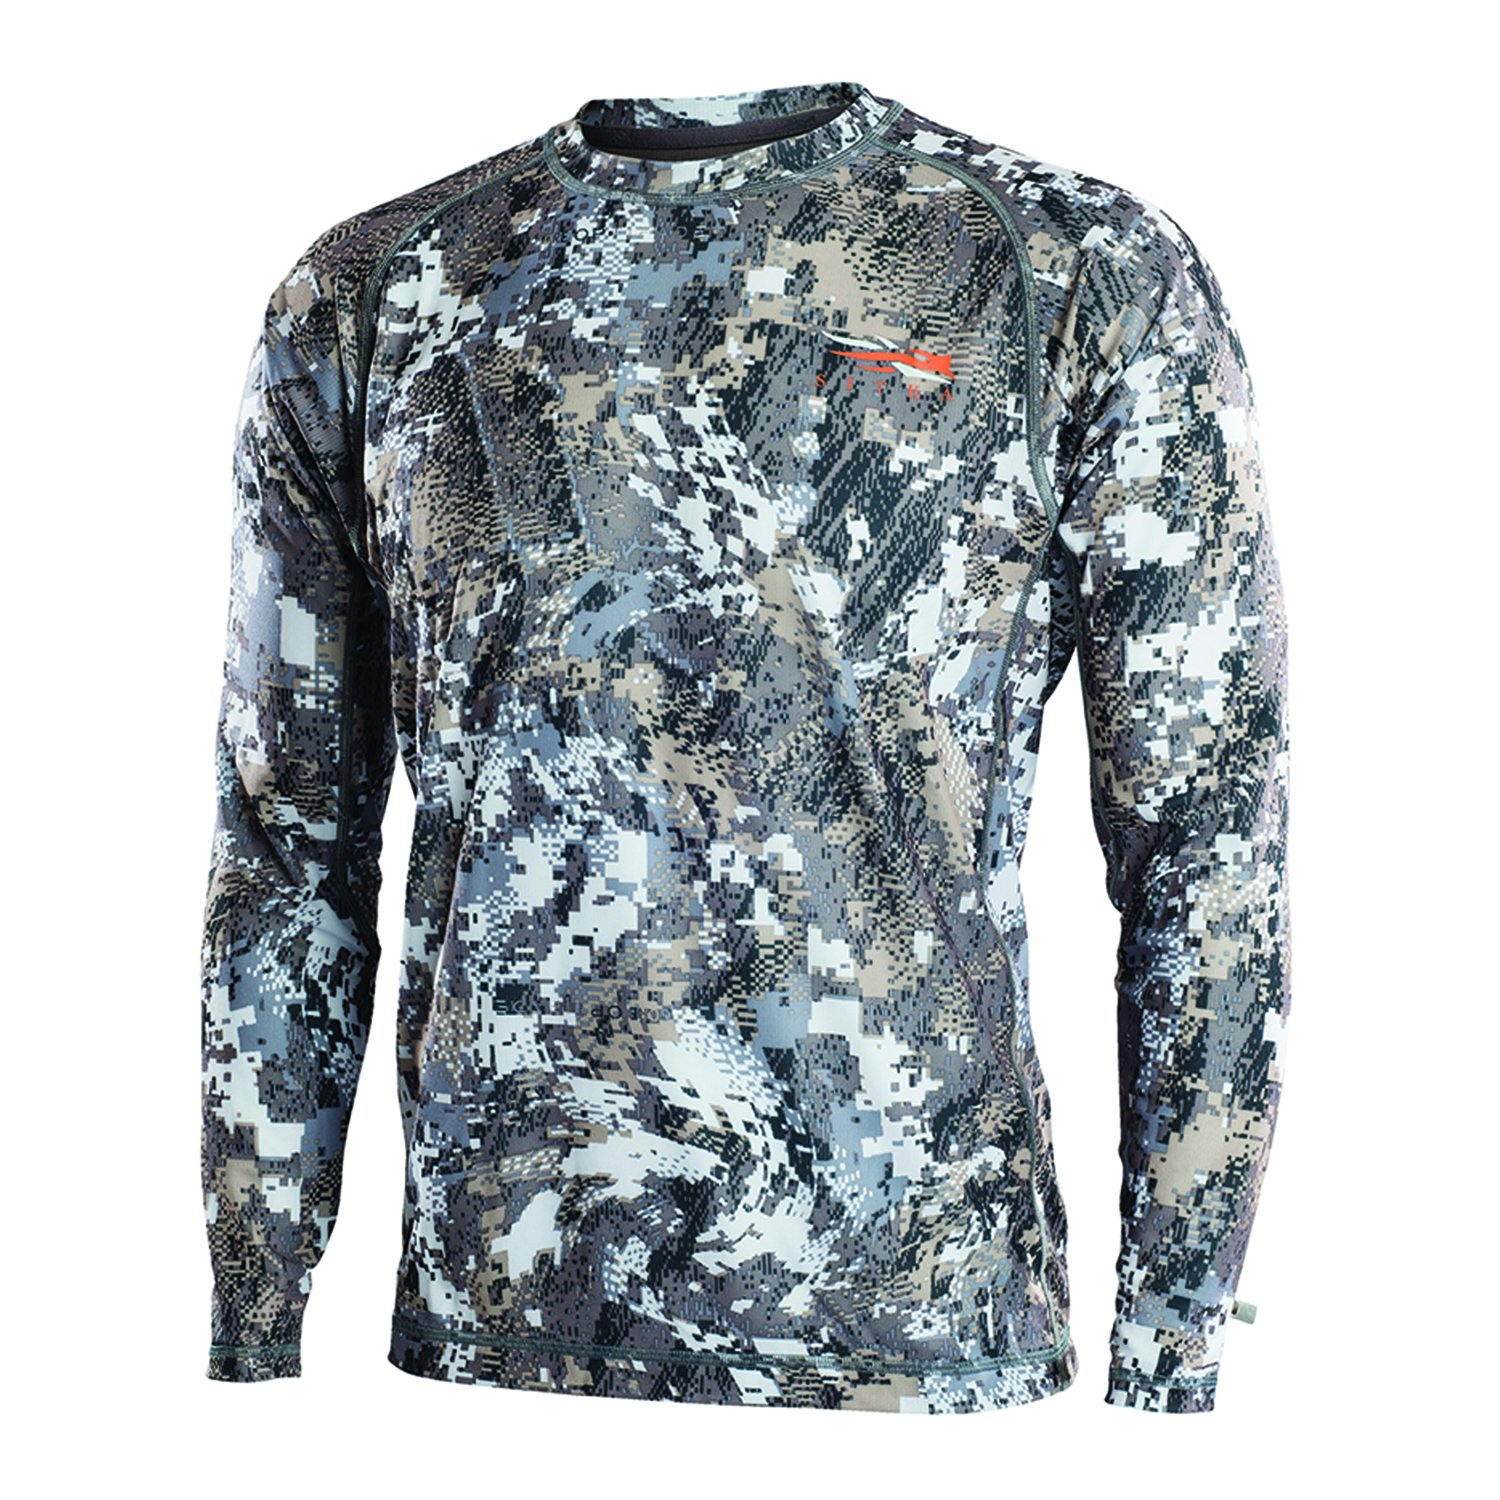 SITKA Gear Core Light Weight Crew - Long Sleeve Optifade Elevated II Large by SITKA (Image #1)